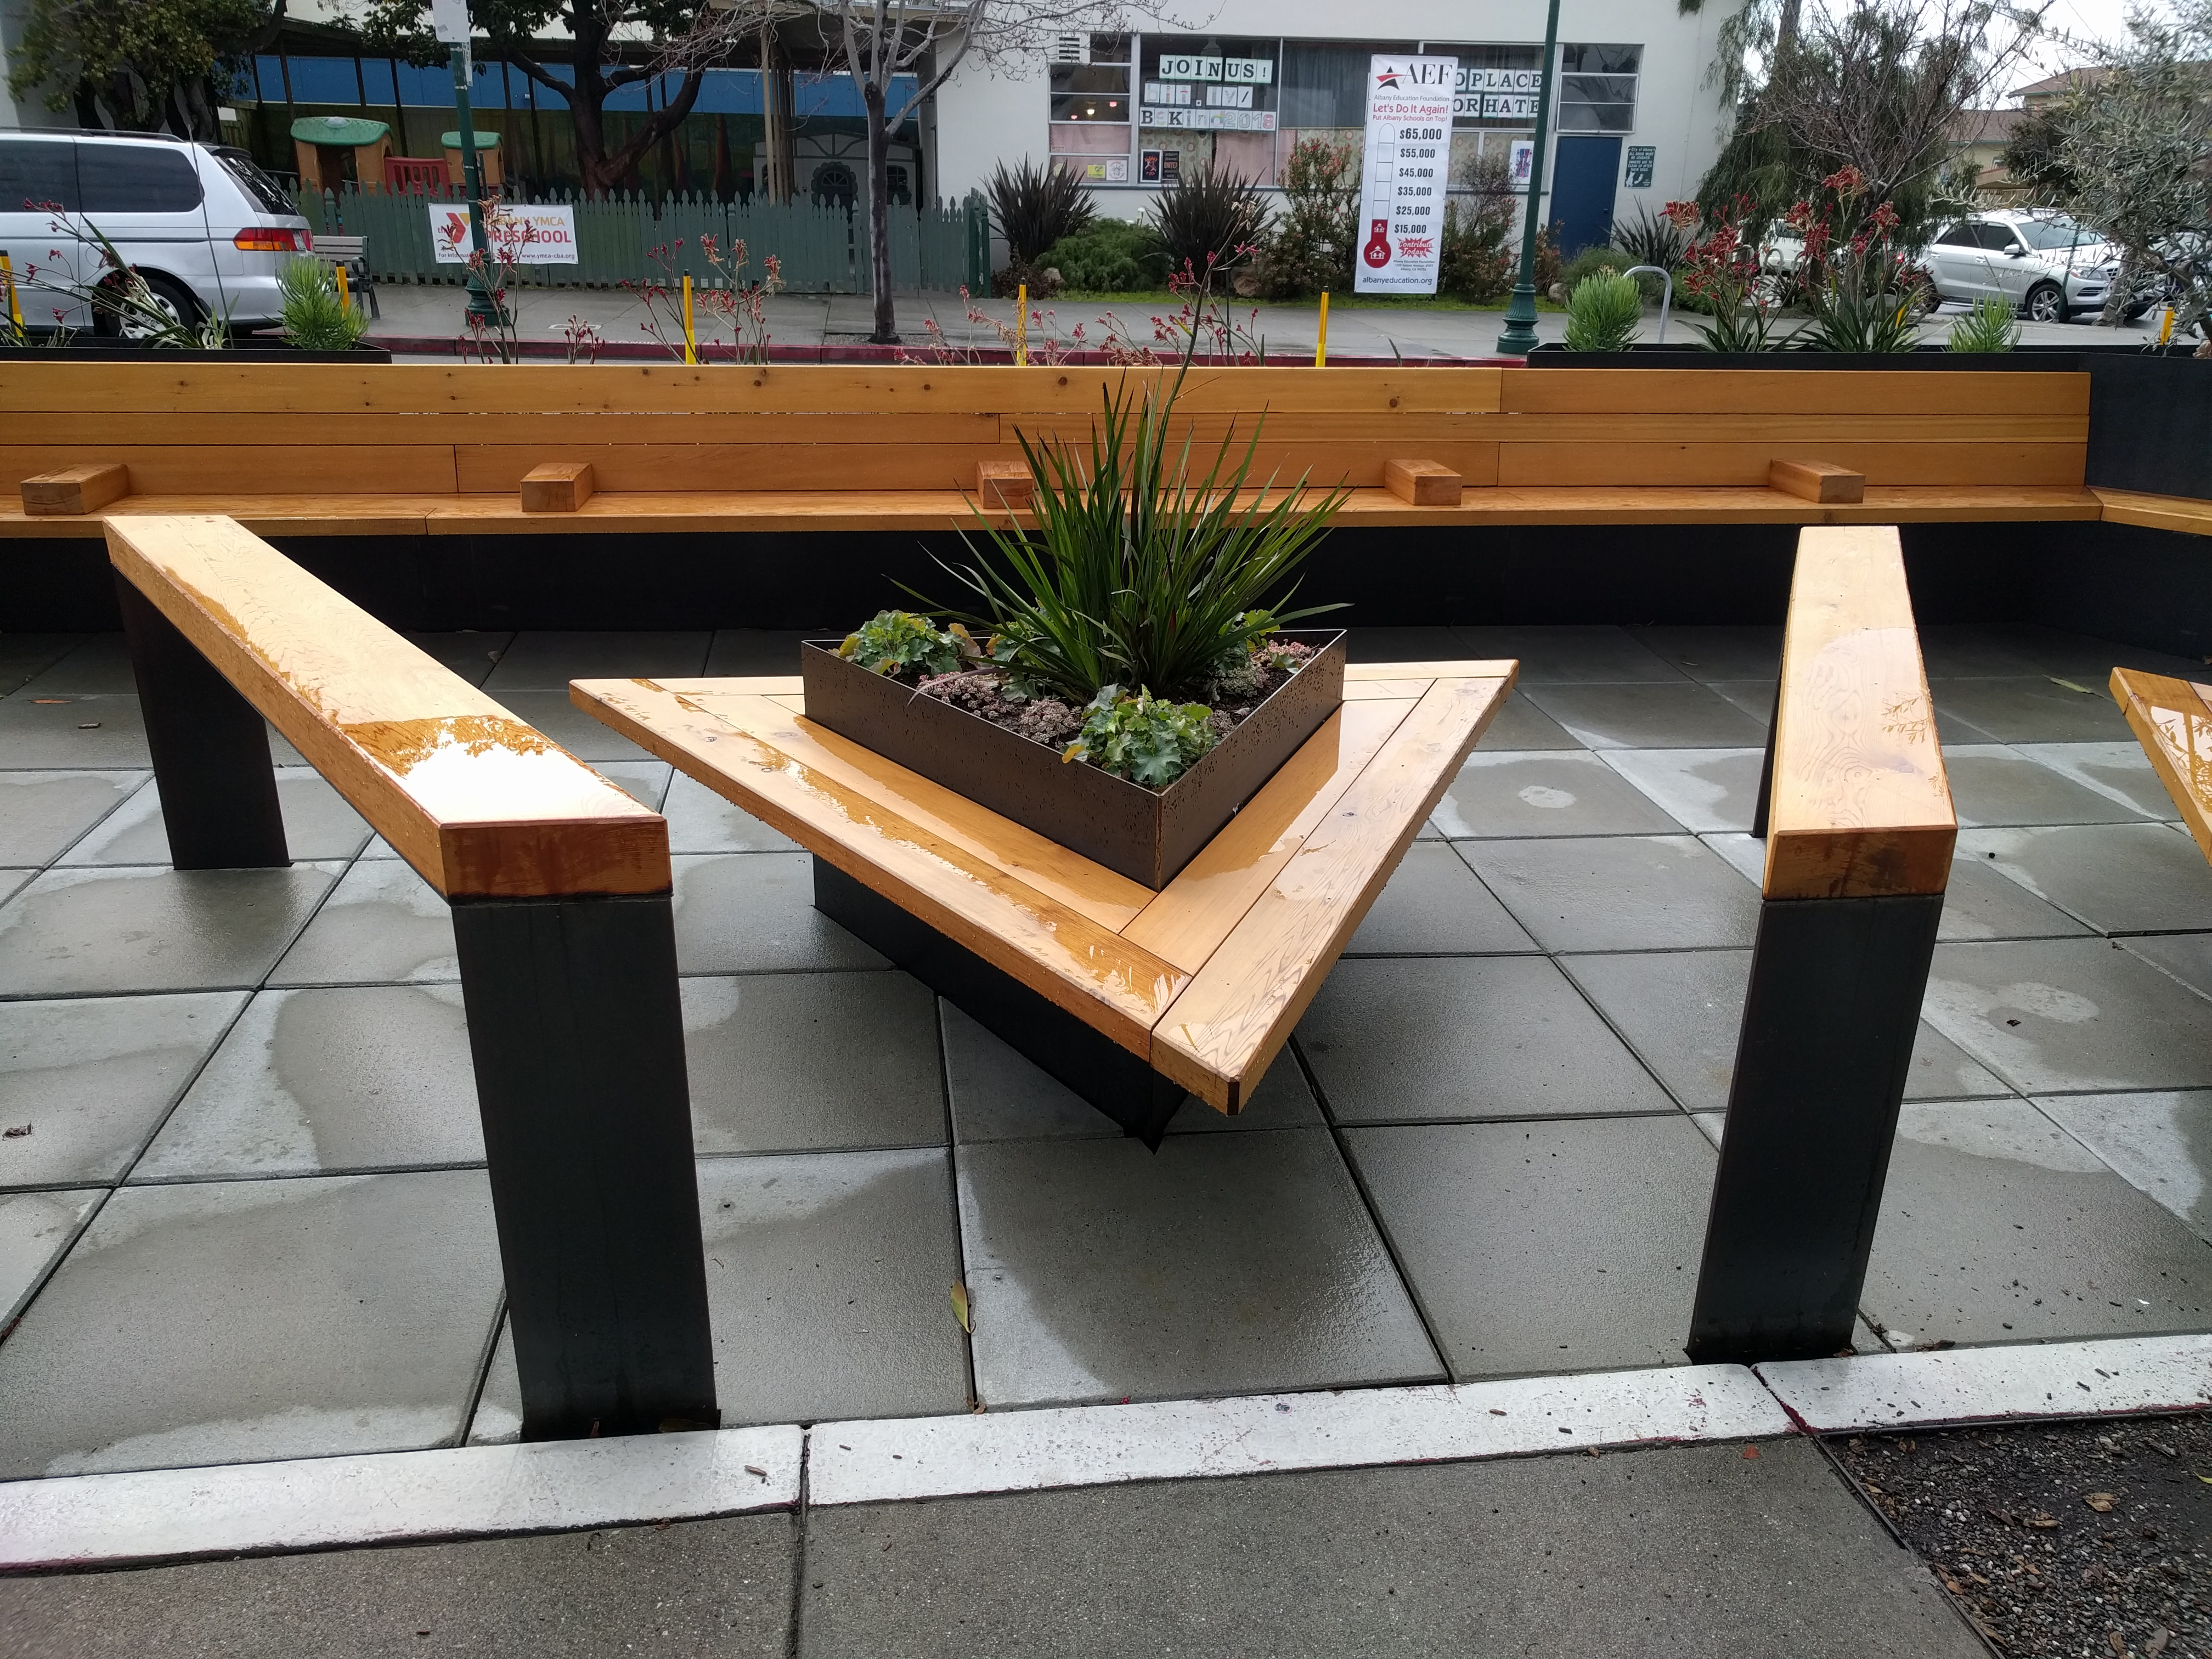 A parklet in Albany. Using a parking space for something other than car storage was unthinkable, until artists and advocates started 'Parking Day'. Photo: Streetsblog/Rudick